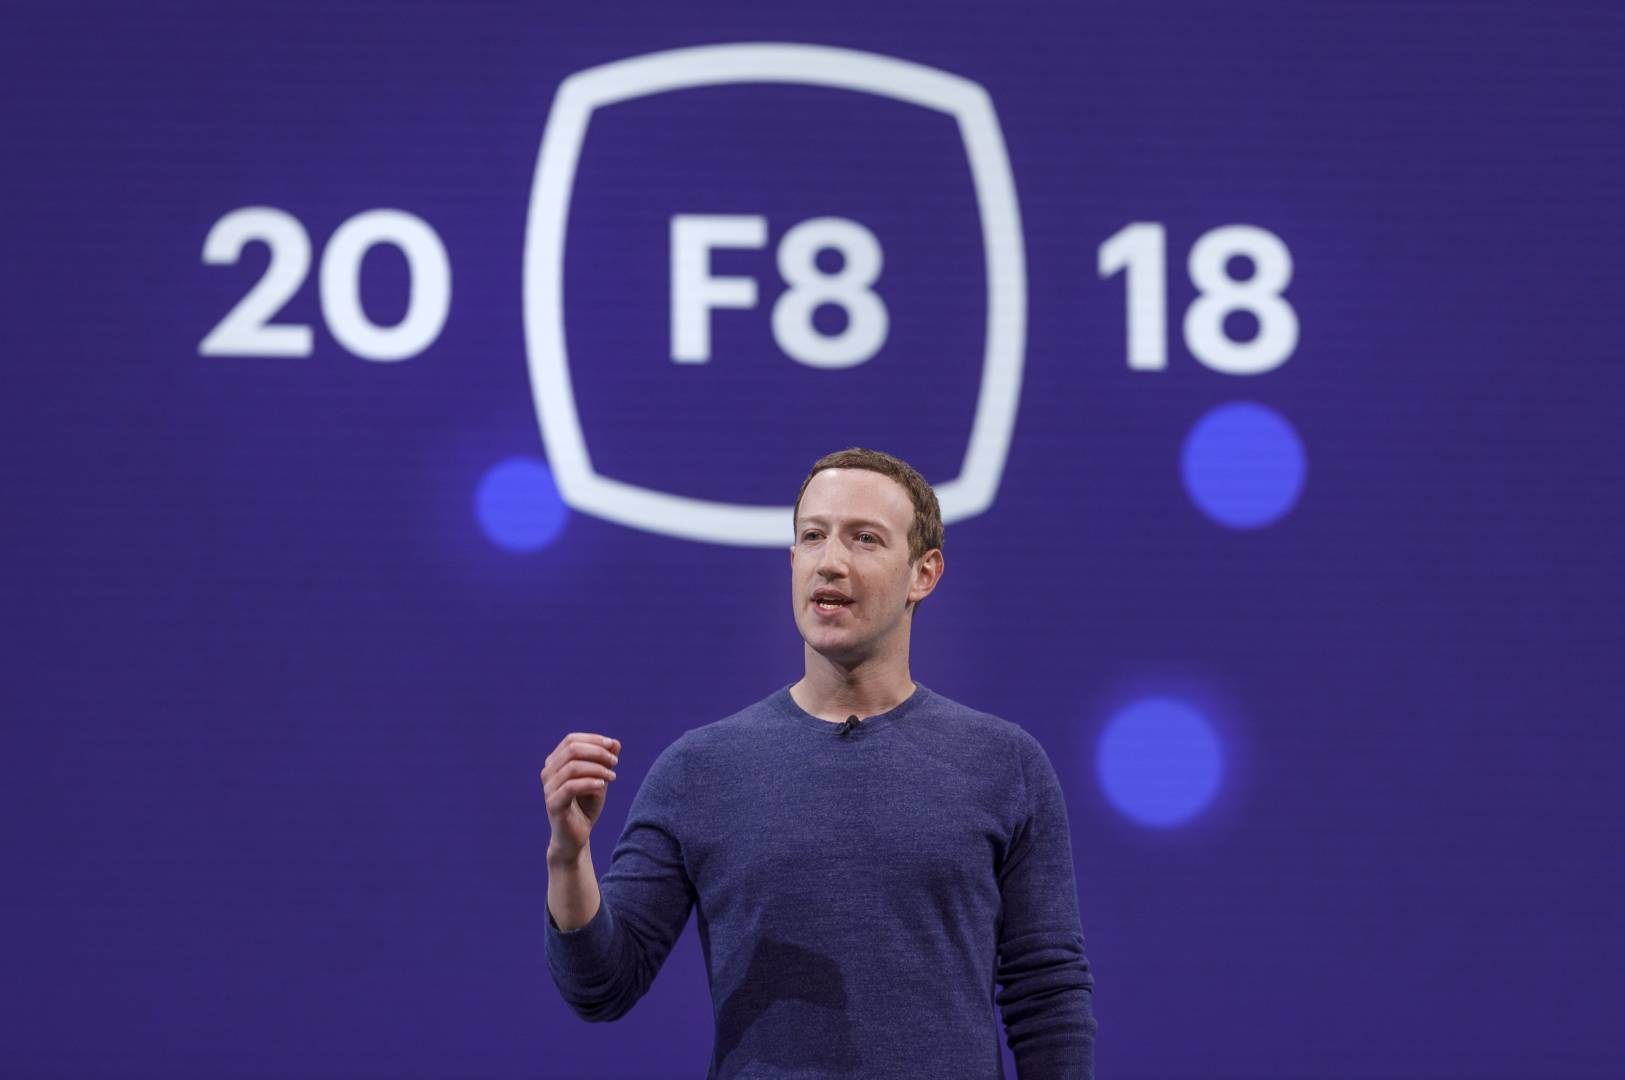 f8 facebook conference 2018 all changes and new features